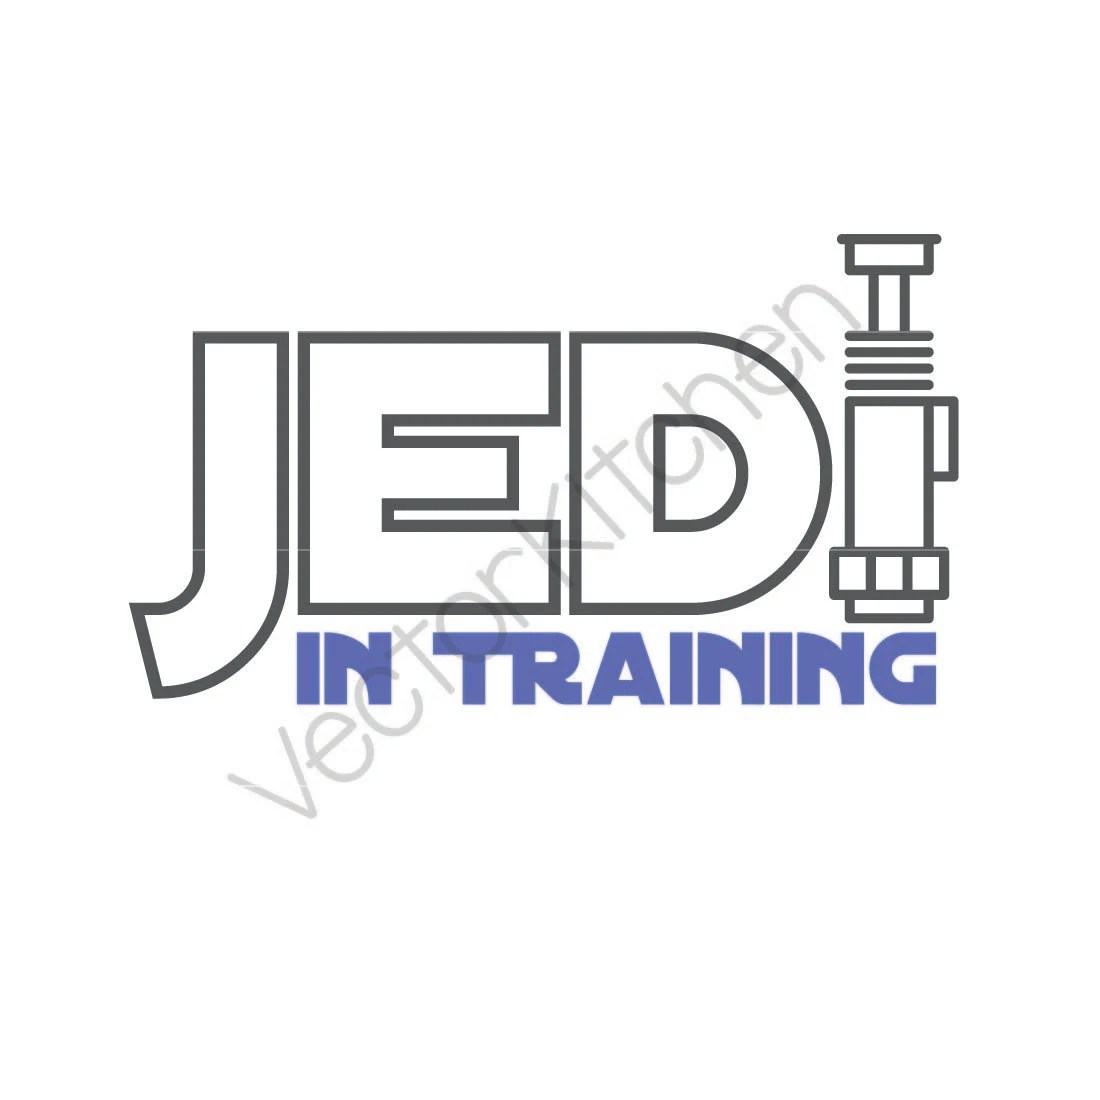 Jedi in Training Lightsaber Cutting Template SVG EPS